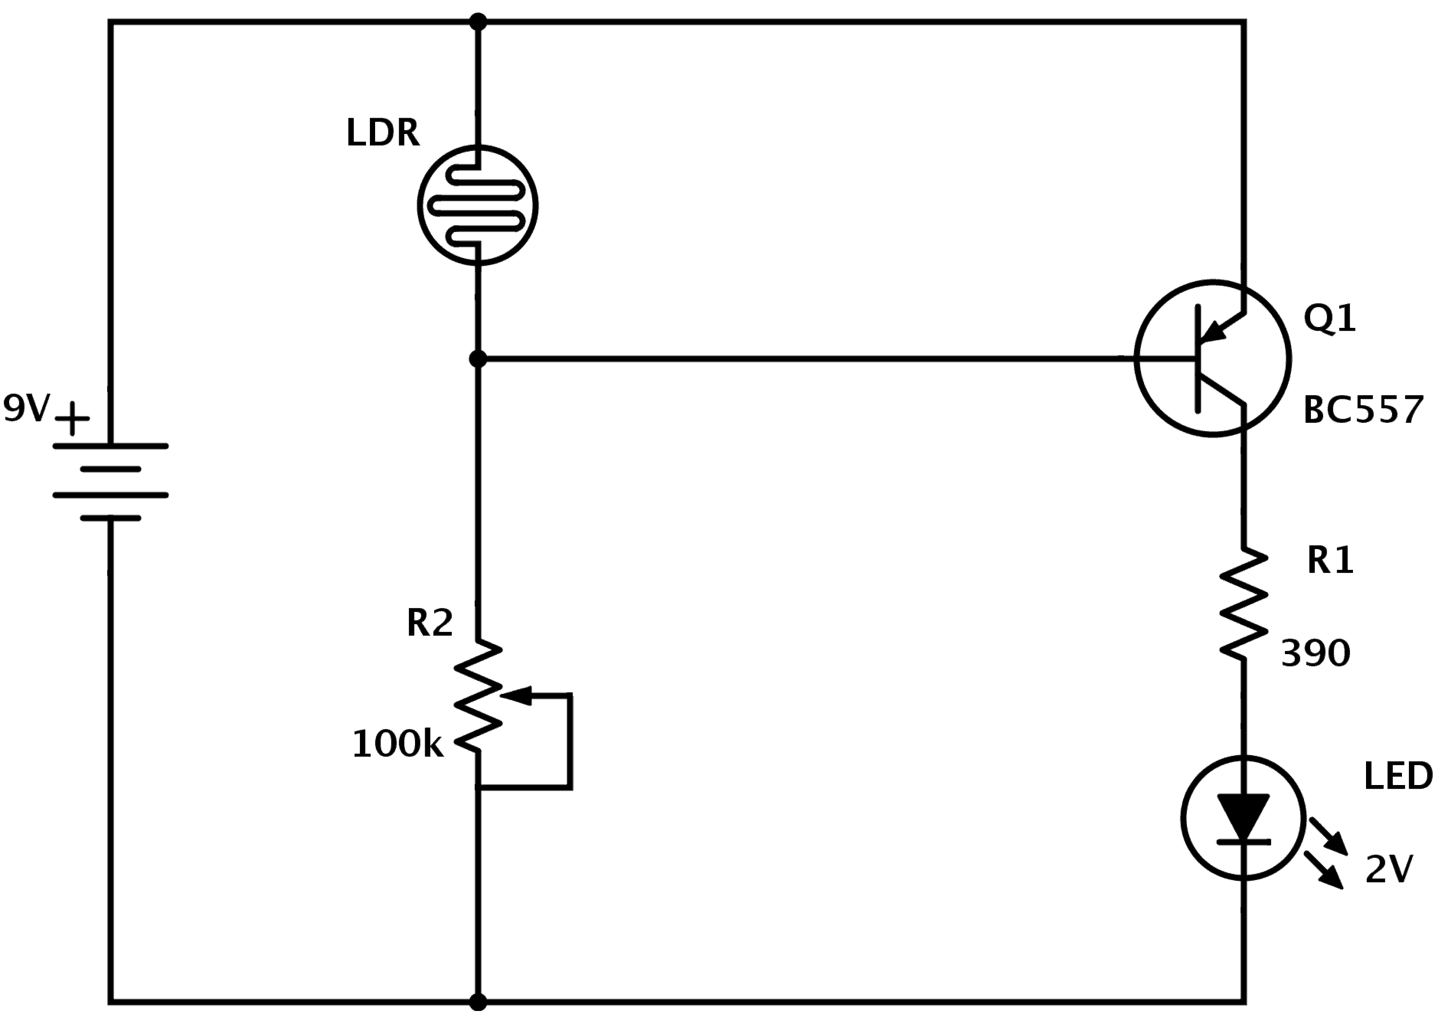 Ldr Circuit Diagram Build Electronic Circuits Your Own Security Systems Ir Receiver With Pnp Transistor Dark Detector